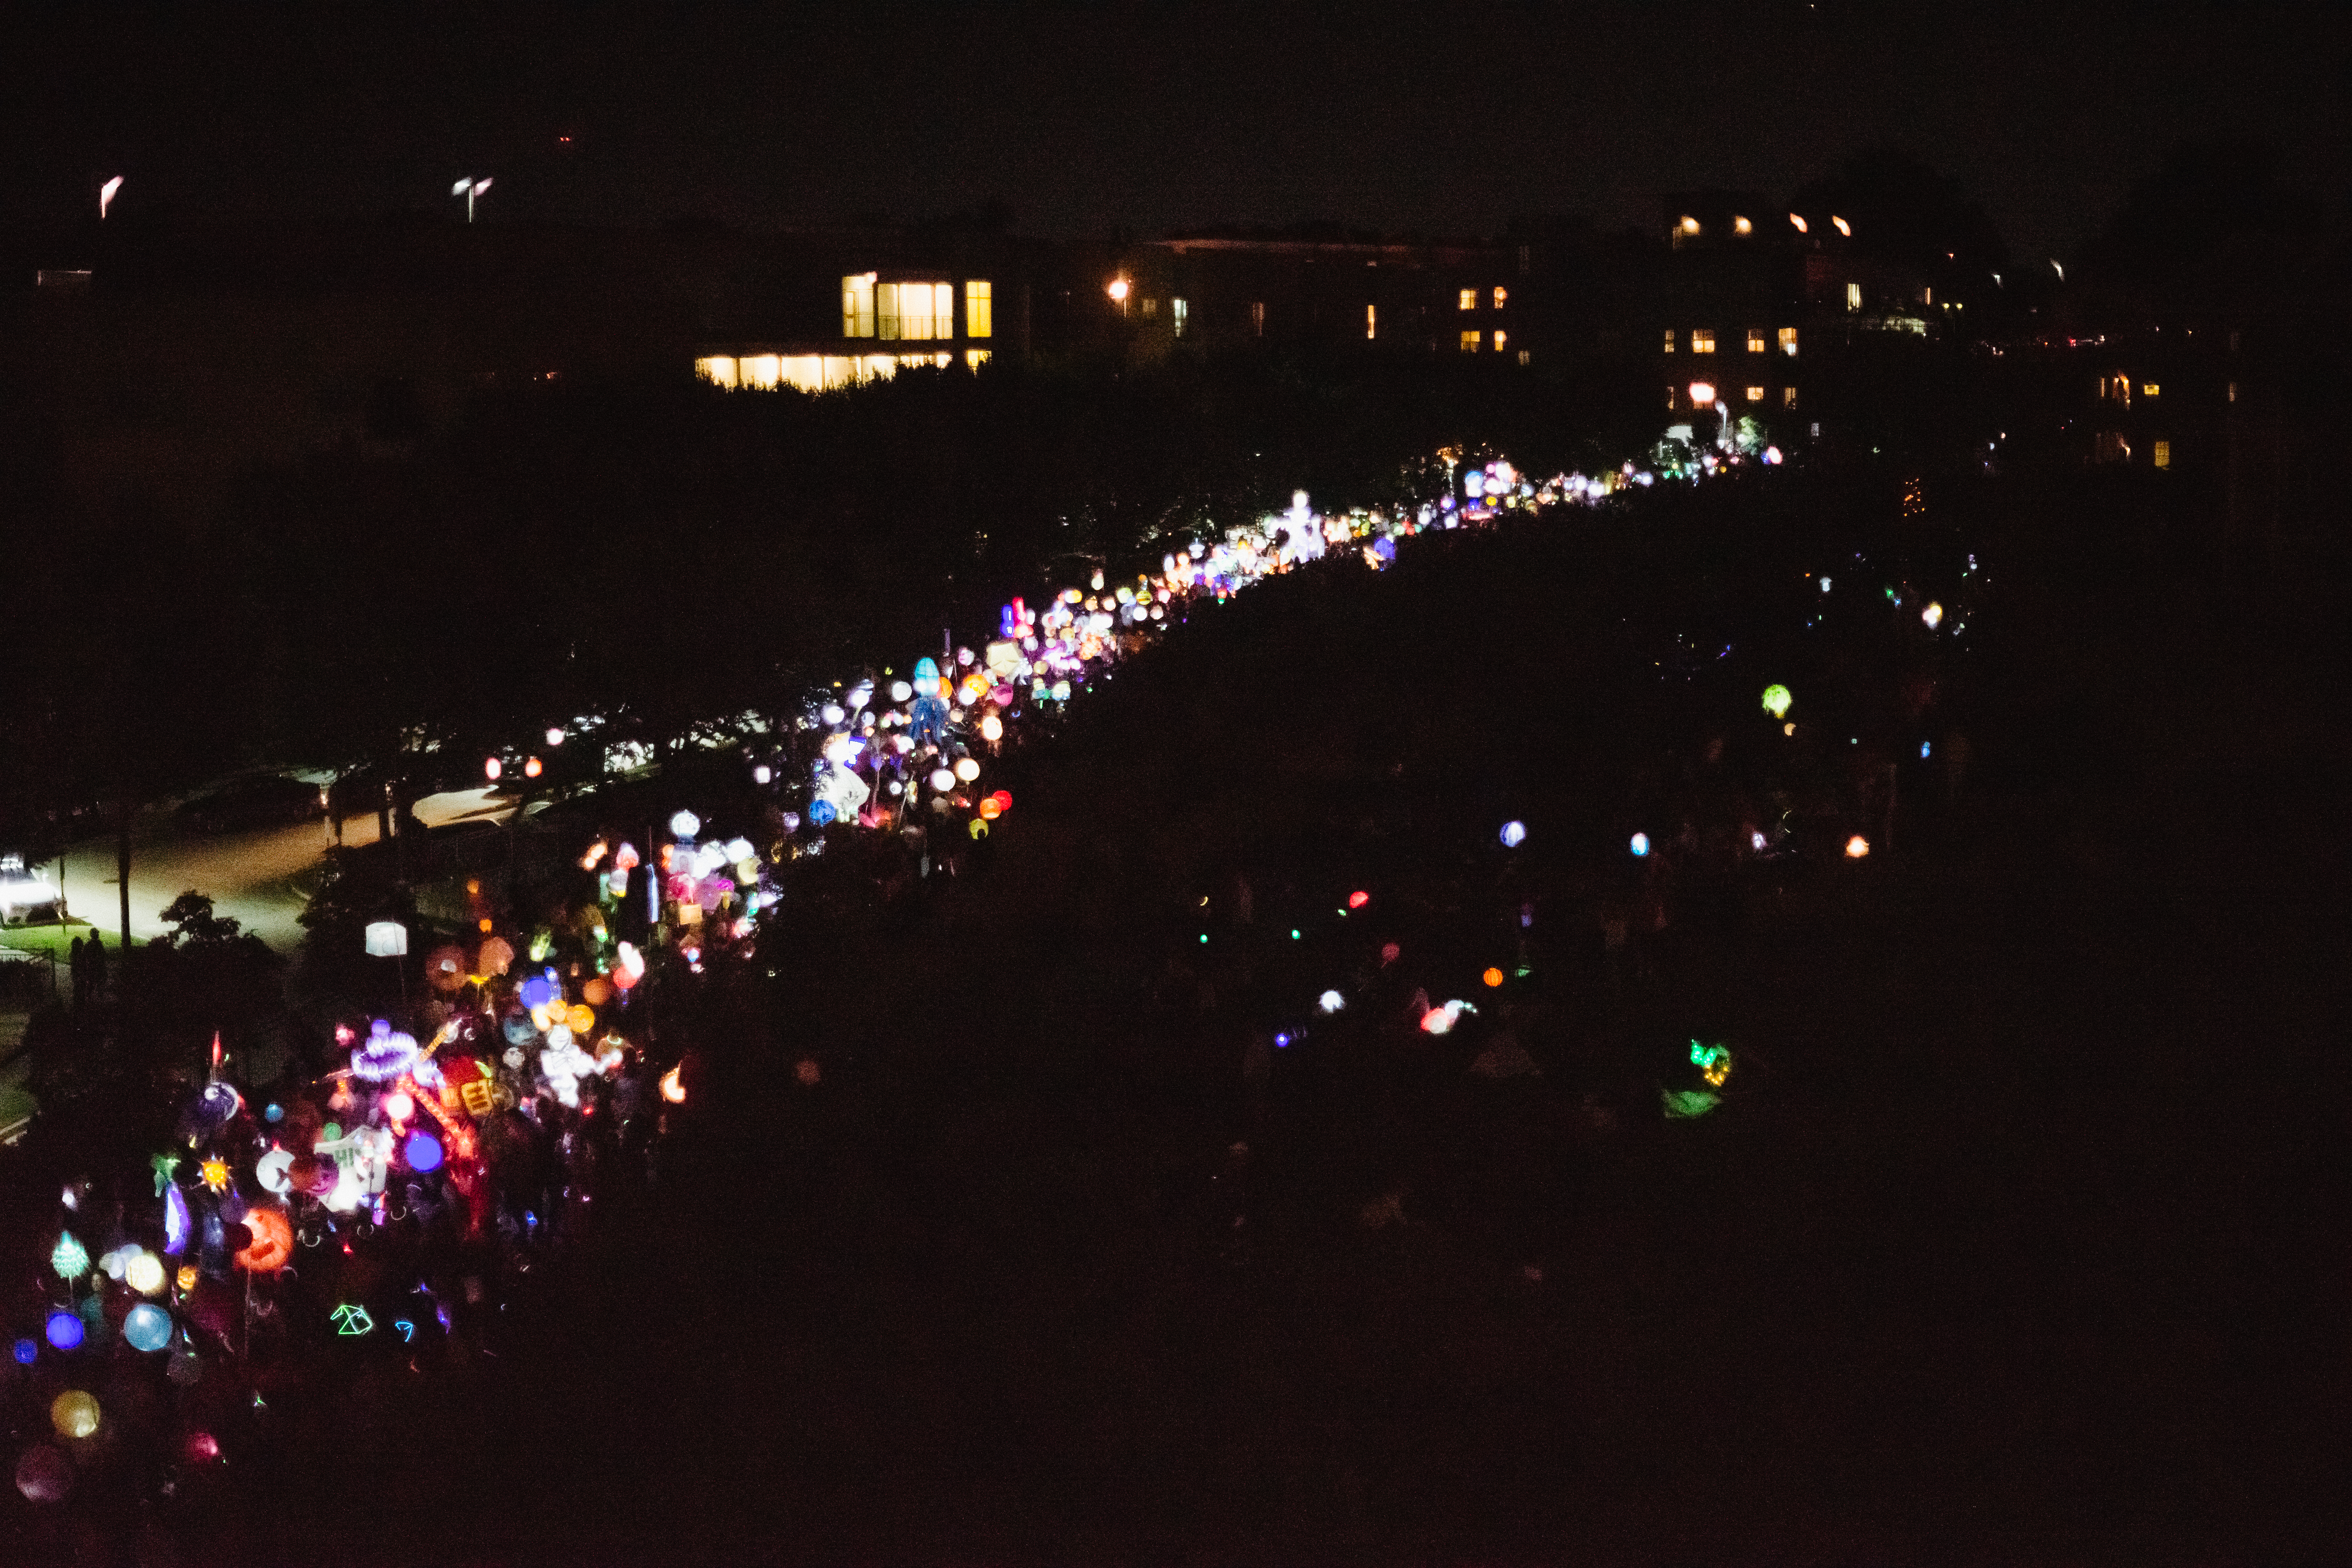 Growing from its modest roots, over 60,000 people light up the BeltLine during the lantern parade each fall.